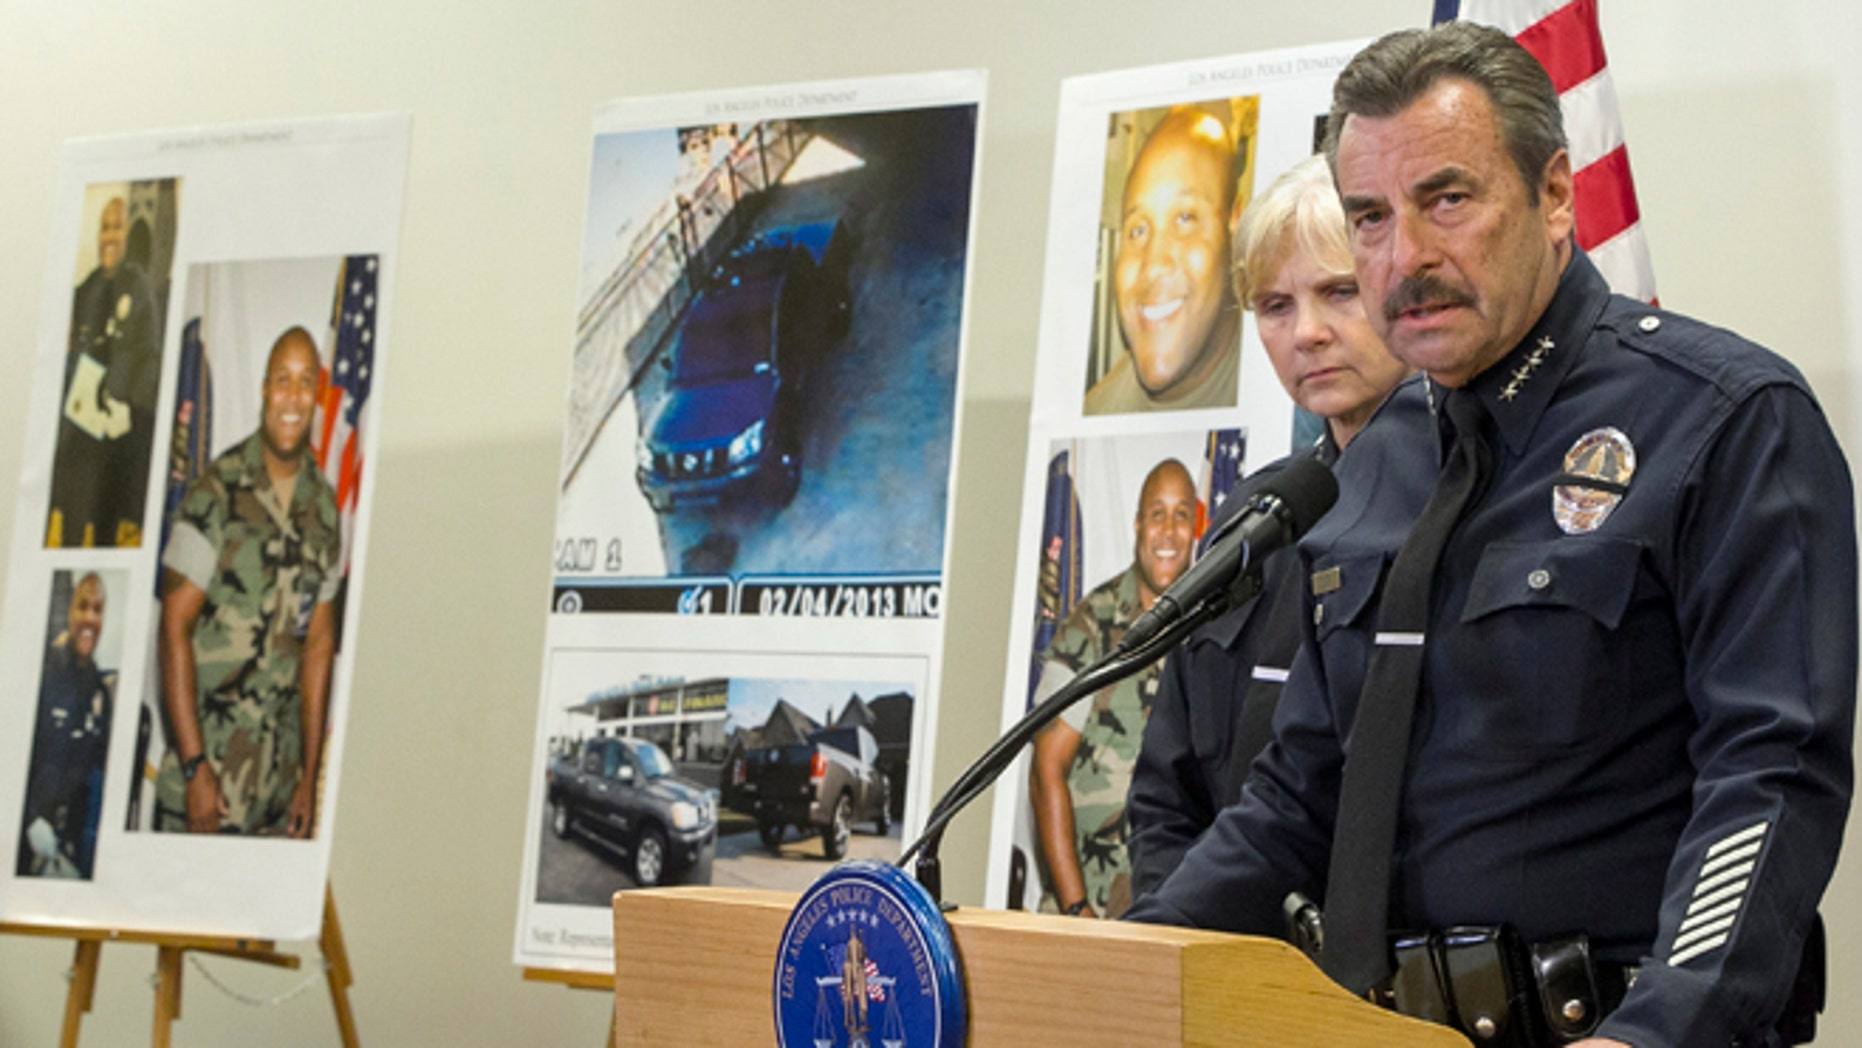 FILE 2013: Los Angeles Police Chief Charlie Beck comments on fired officer, Christopher Dorner, seen left on police photos, during a news conference at the LAPD headquarters.